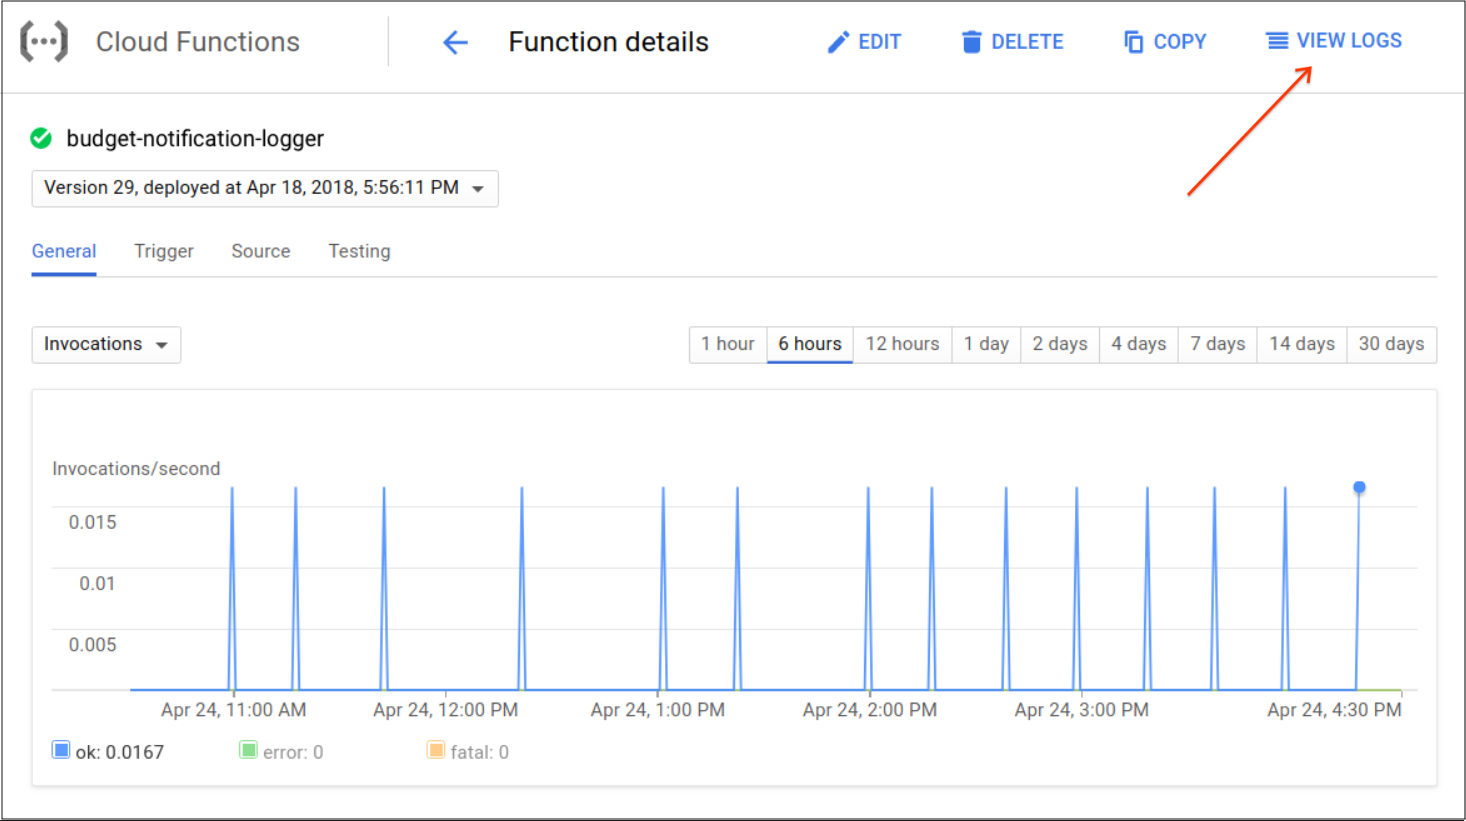 Cloud Functions-Ereignisse in der GCP Console ansehen